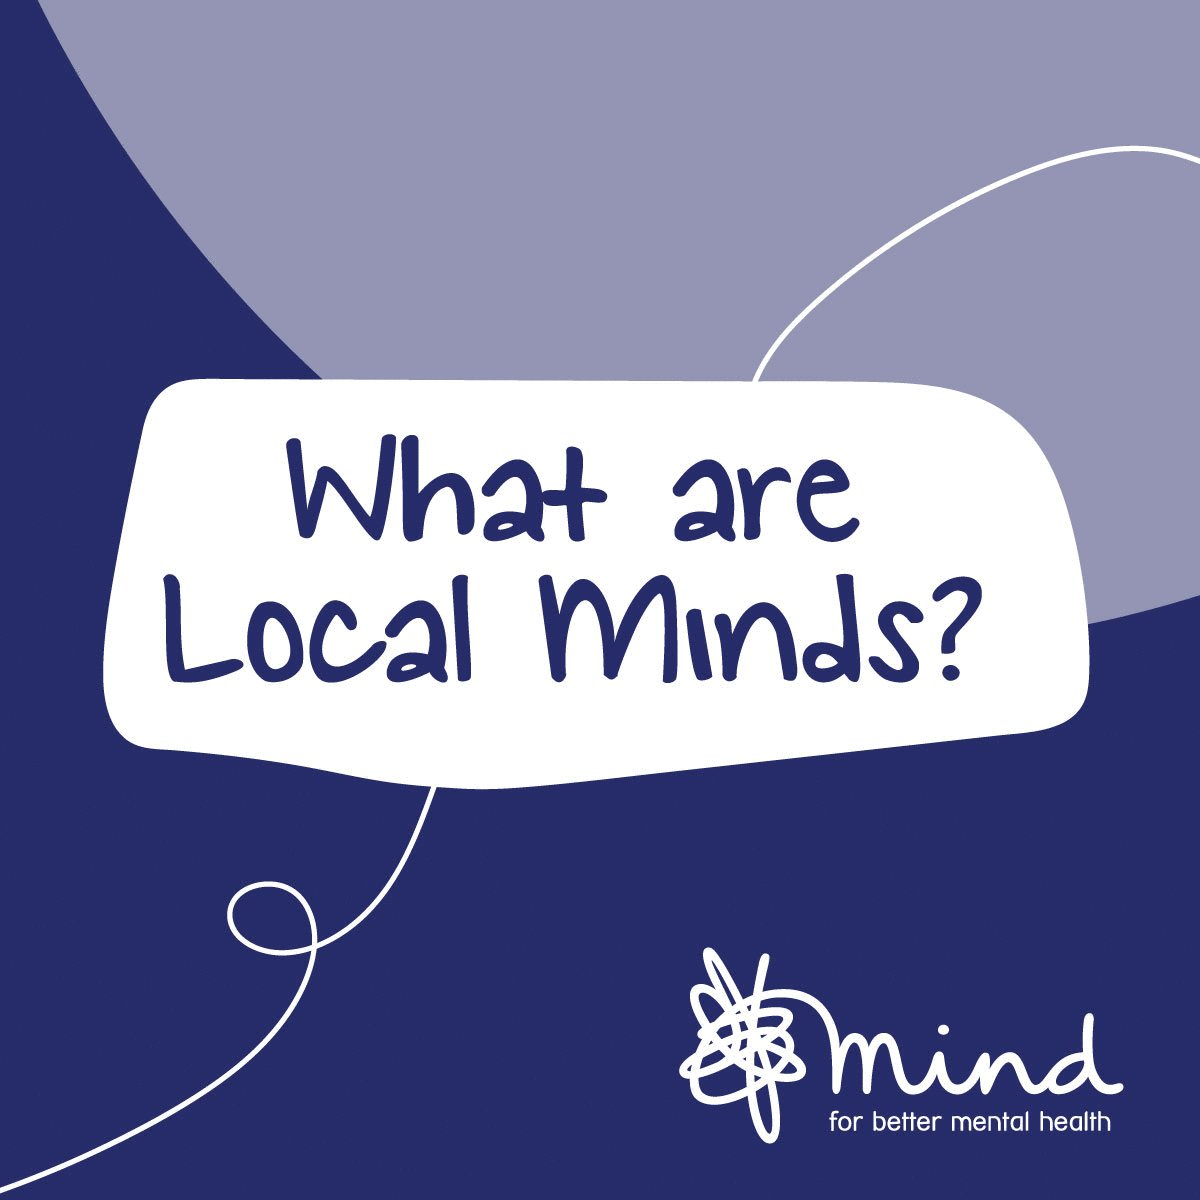 Our local Minds provide help and support directly to local people, based on the needs of the communities that they support. Find a Mind near you > http://bit.ly/2Vt79tB #MentalHealthAwarenessWeek